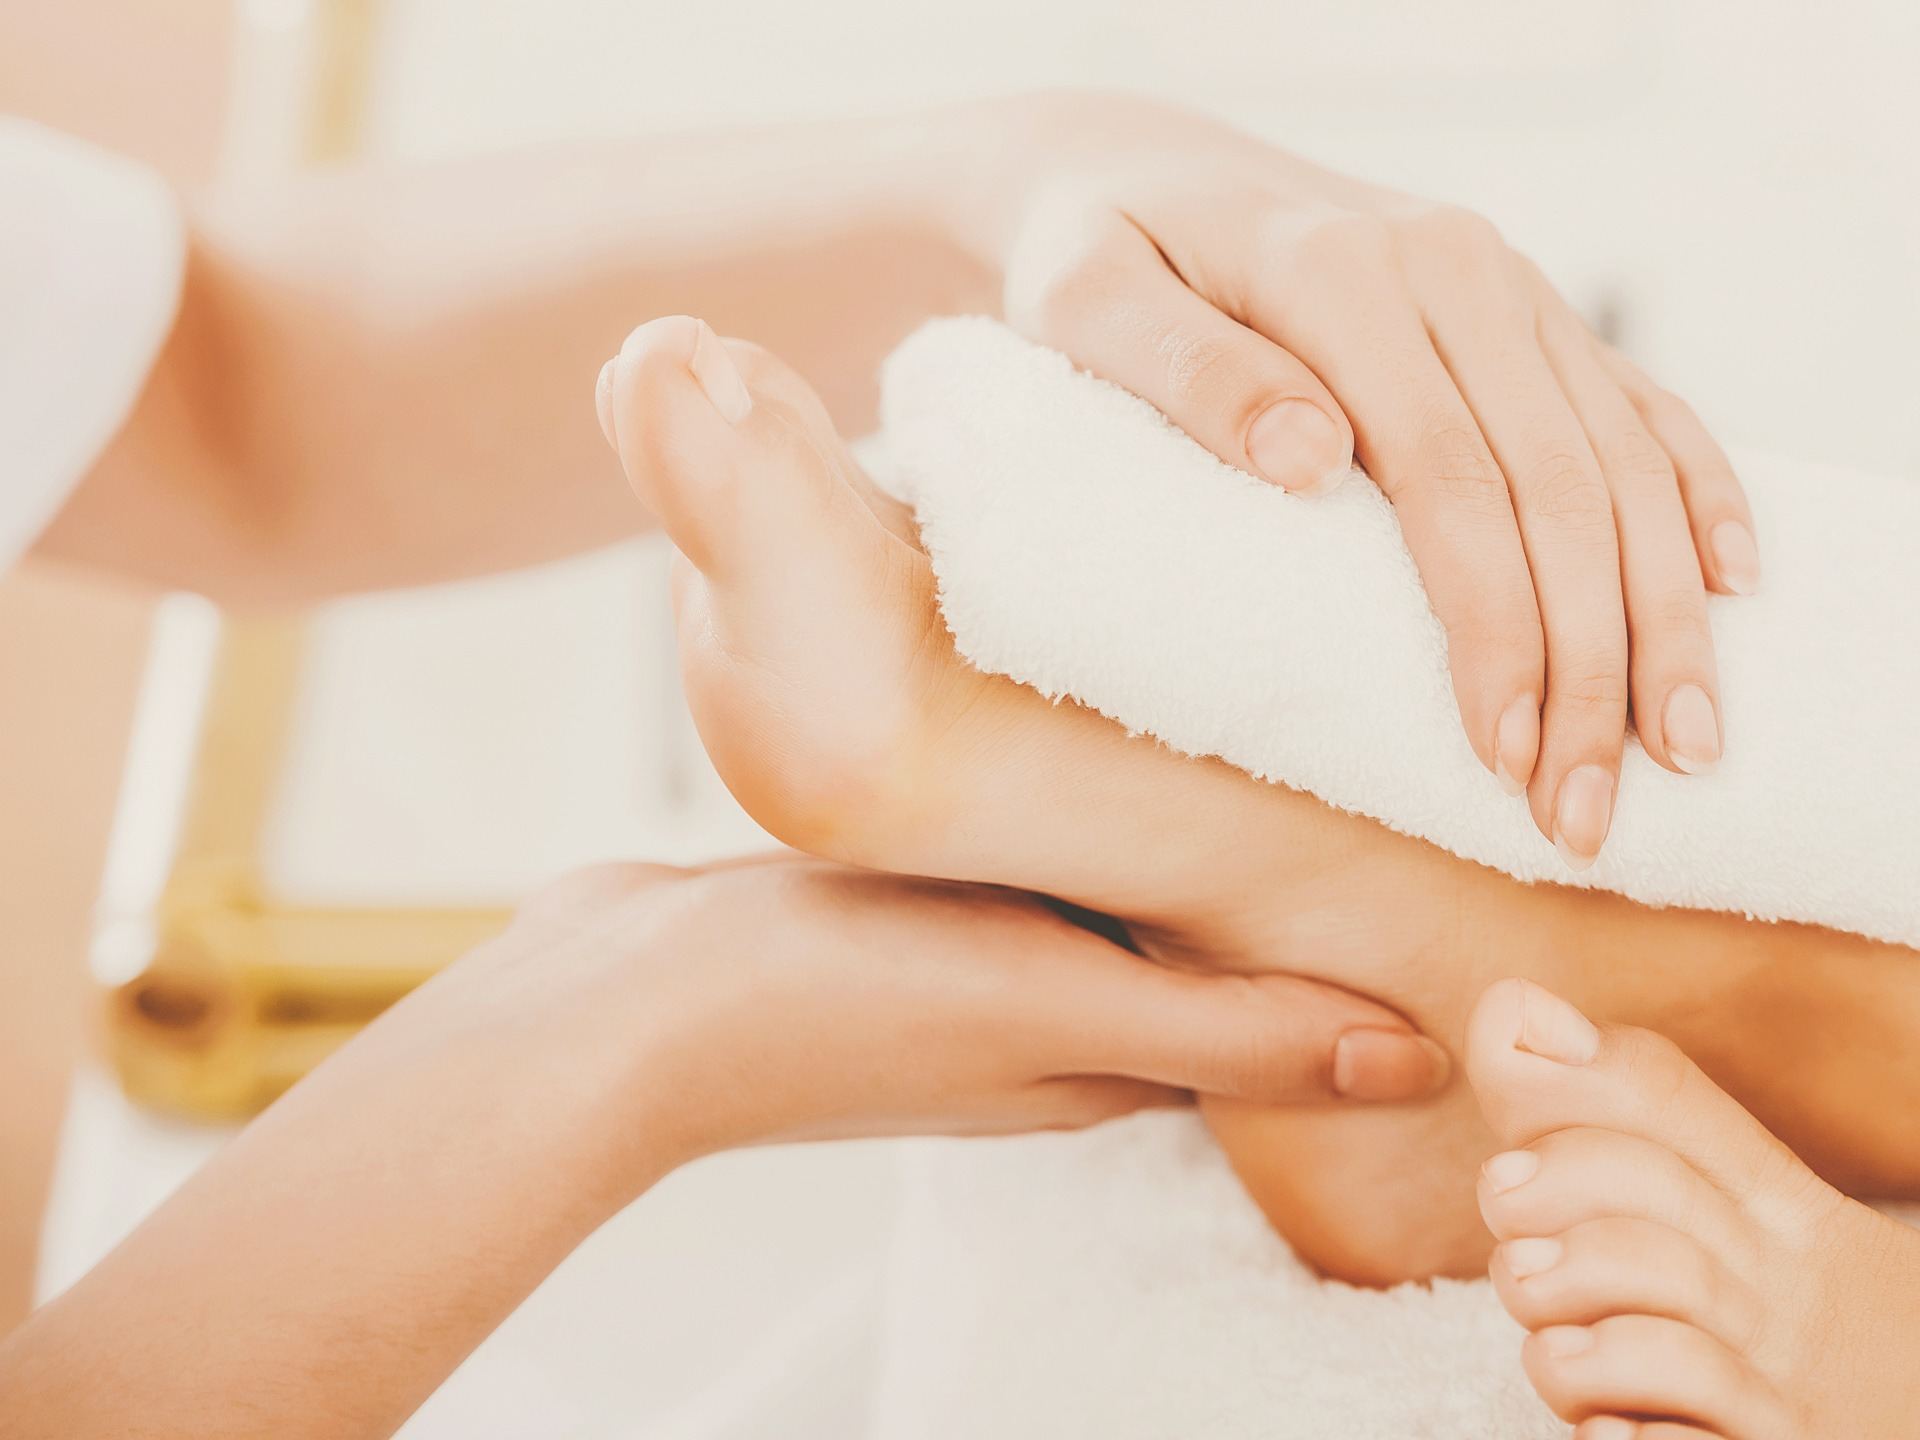 Beautiful Clean Female Legs in Spa Composition. Pedicure for Happy Client. Groomed Legs in Soft White Towel. Young Girl Does Pedicure in Beauty Salon. Concept of Beauty and Health.